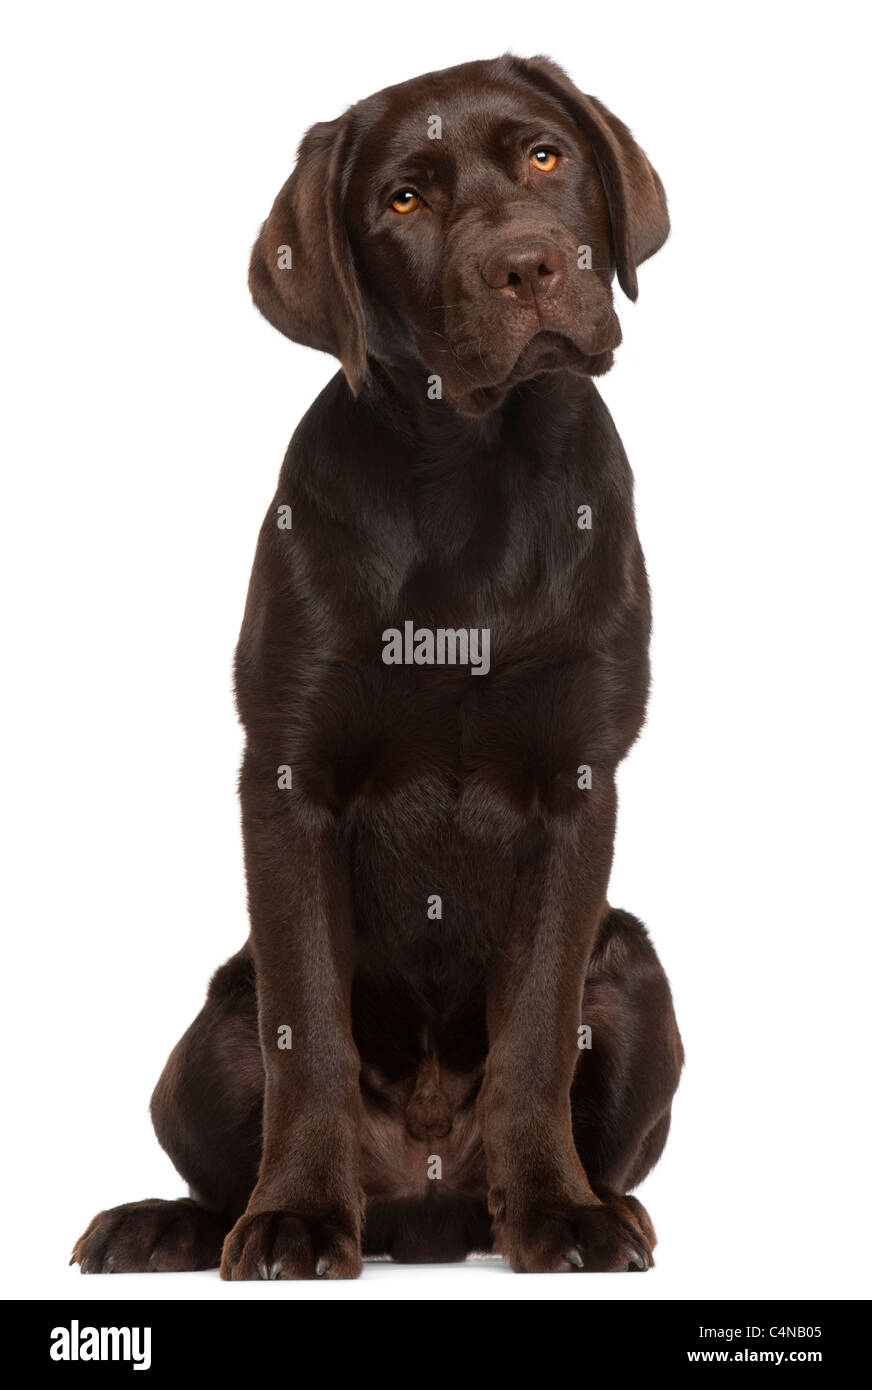 Labrador Retriever puppy, 5 months old, sitting in front of white background - Stock Image